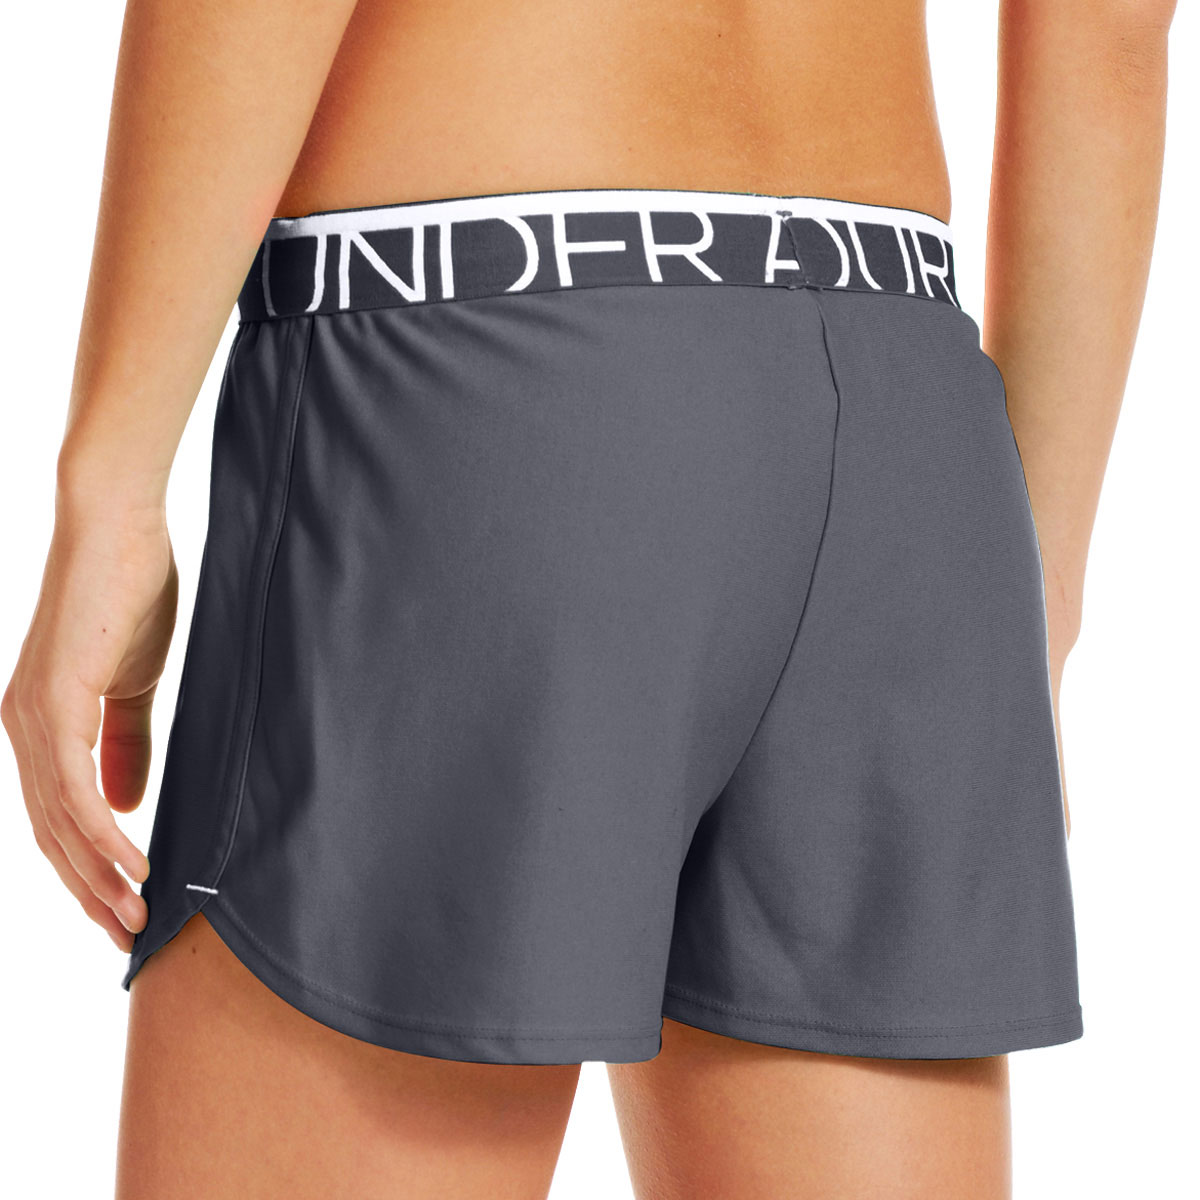 Womens Under Armour Clothing On Ebay